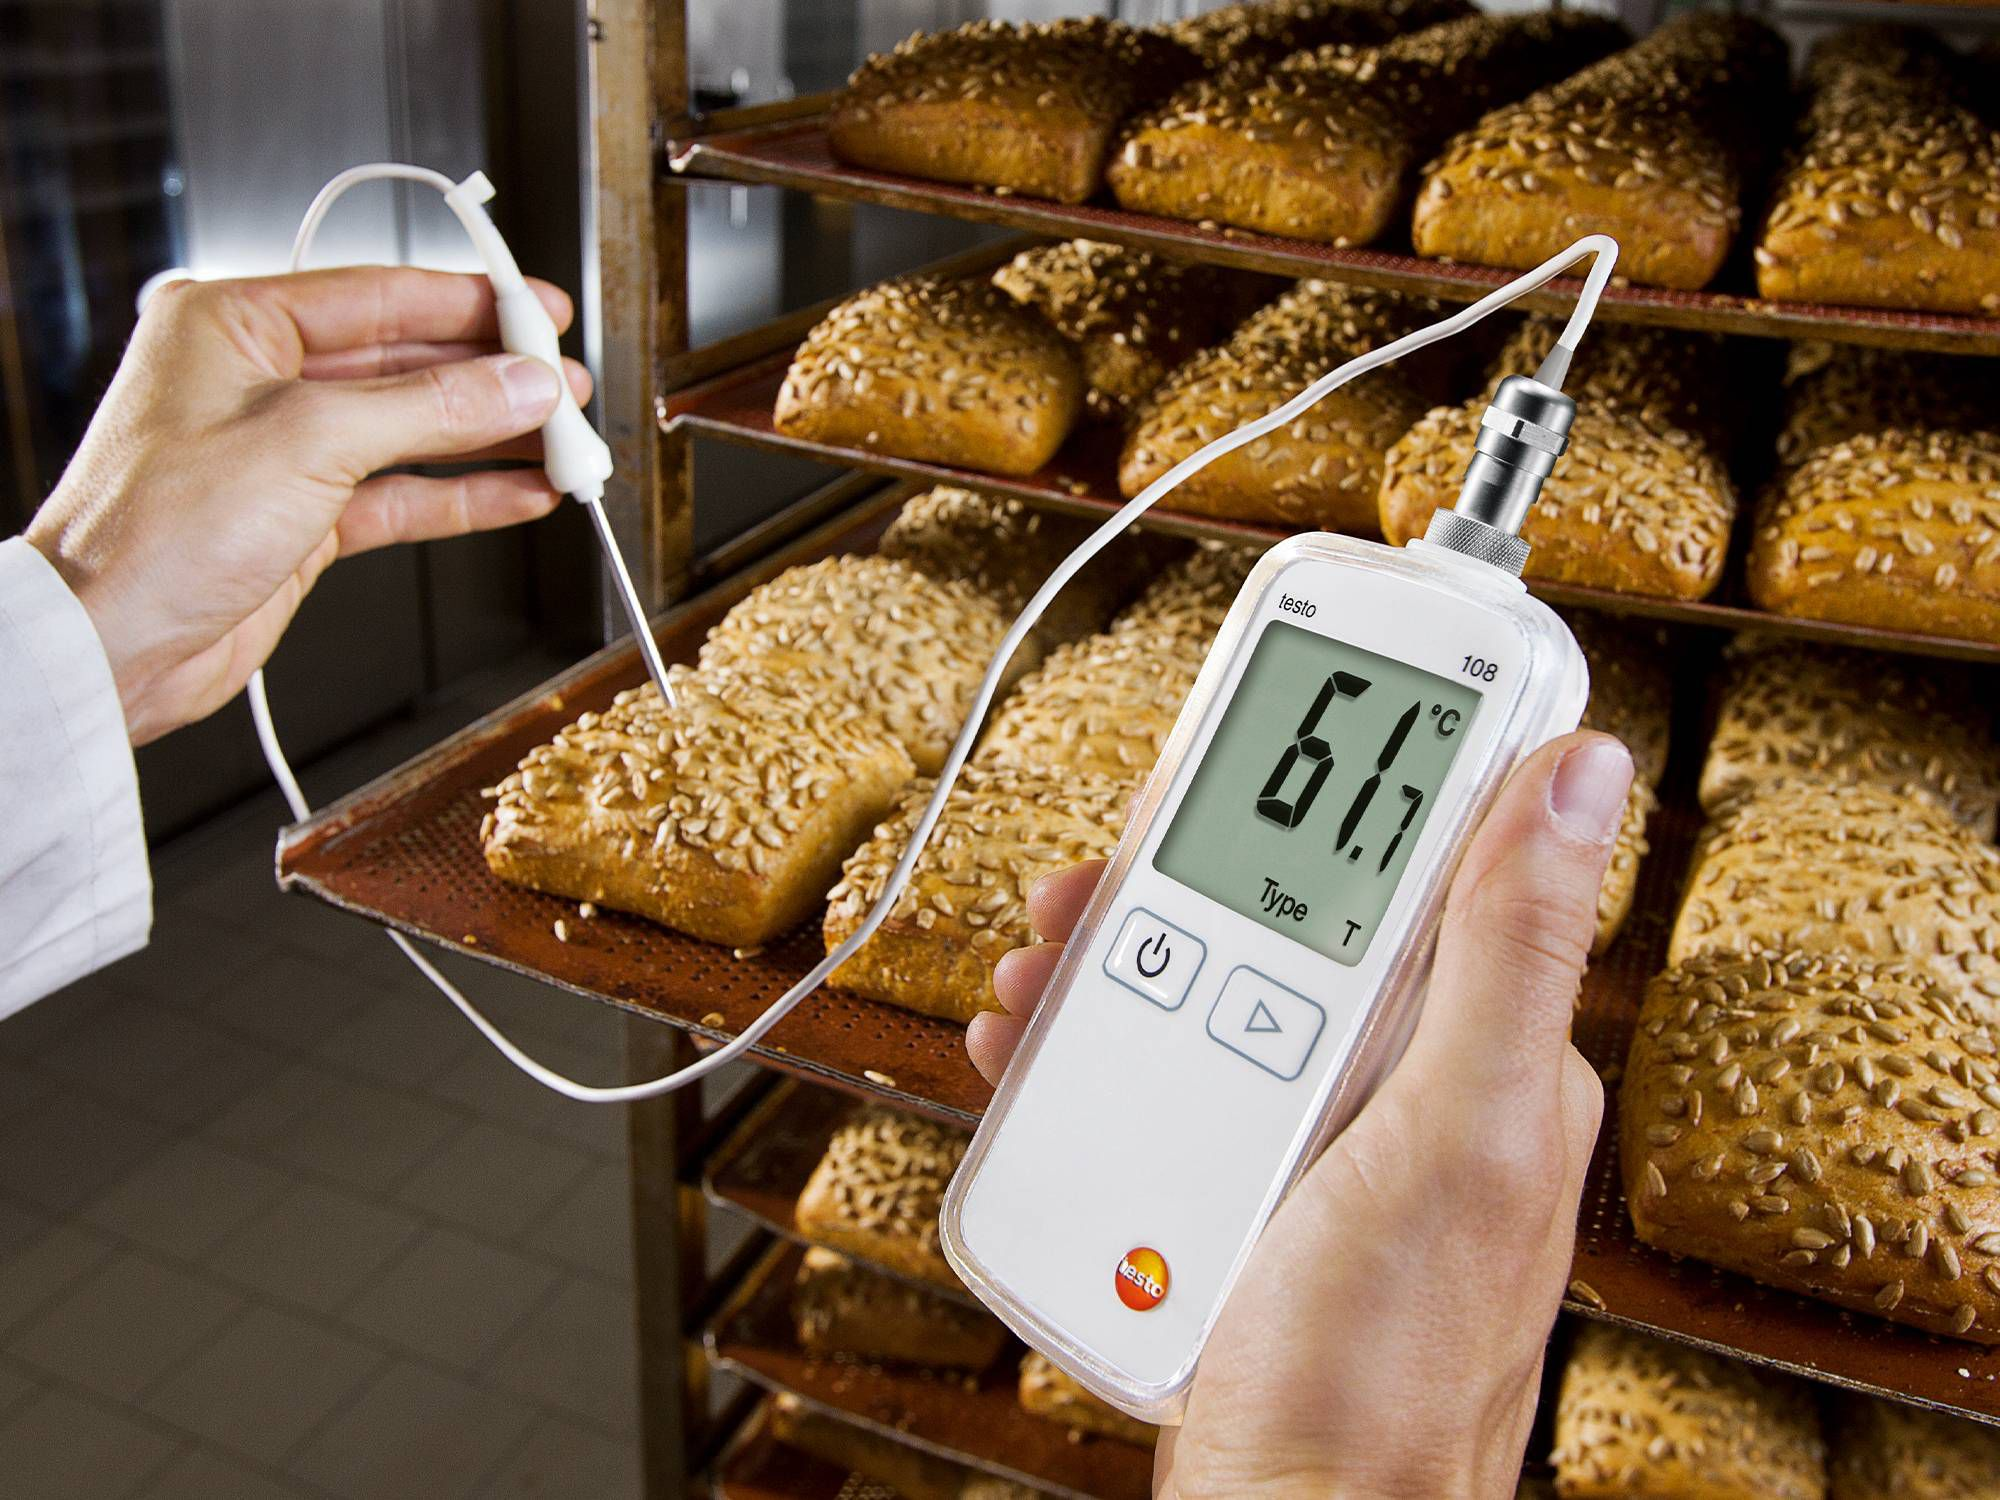 Temperature check in traditional food production setcor